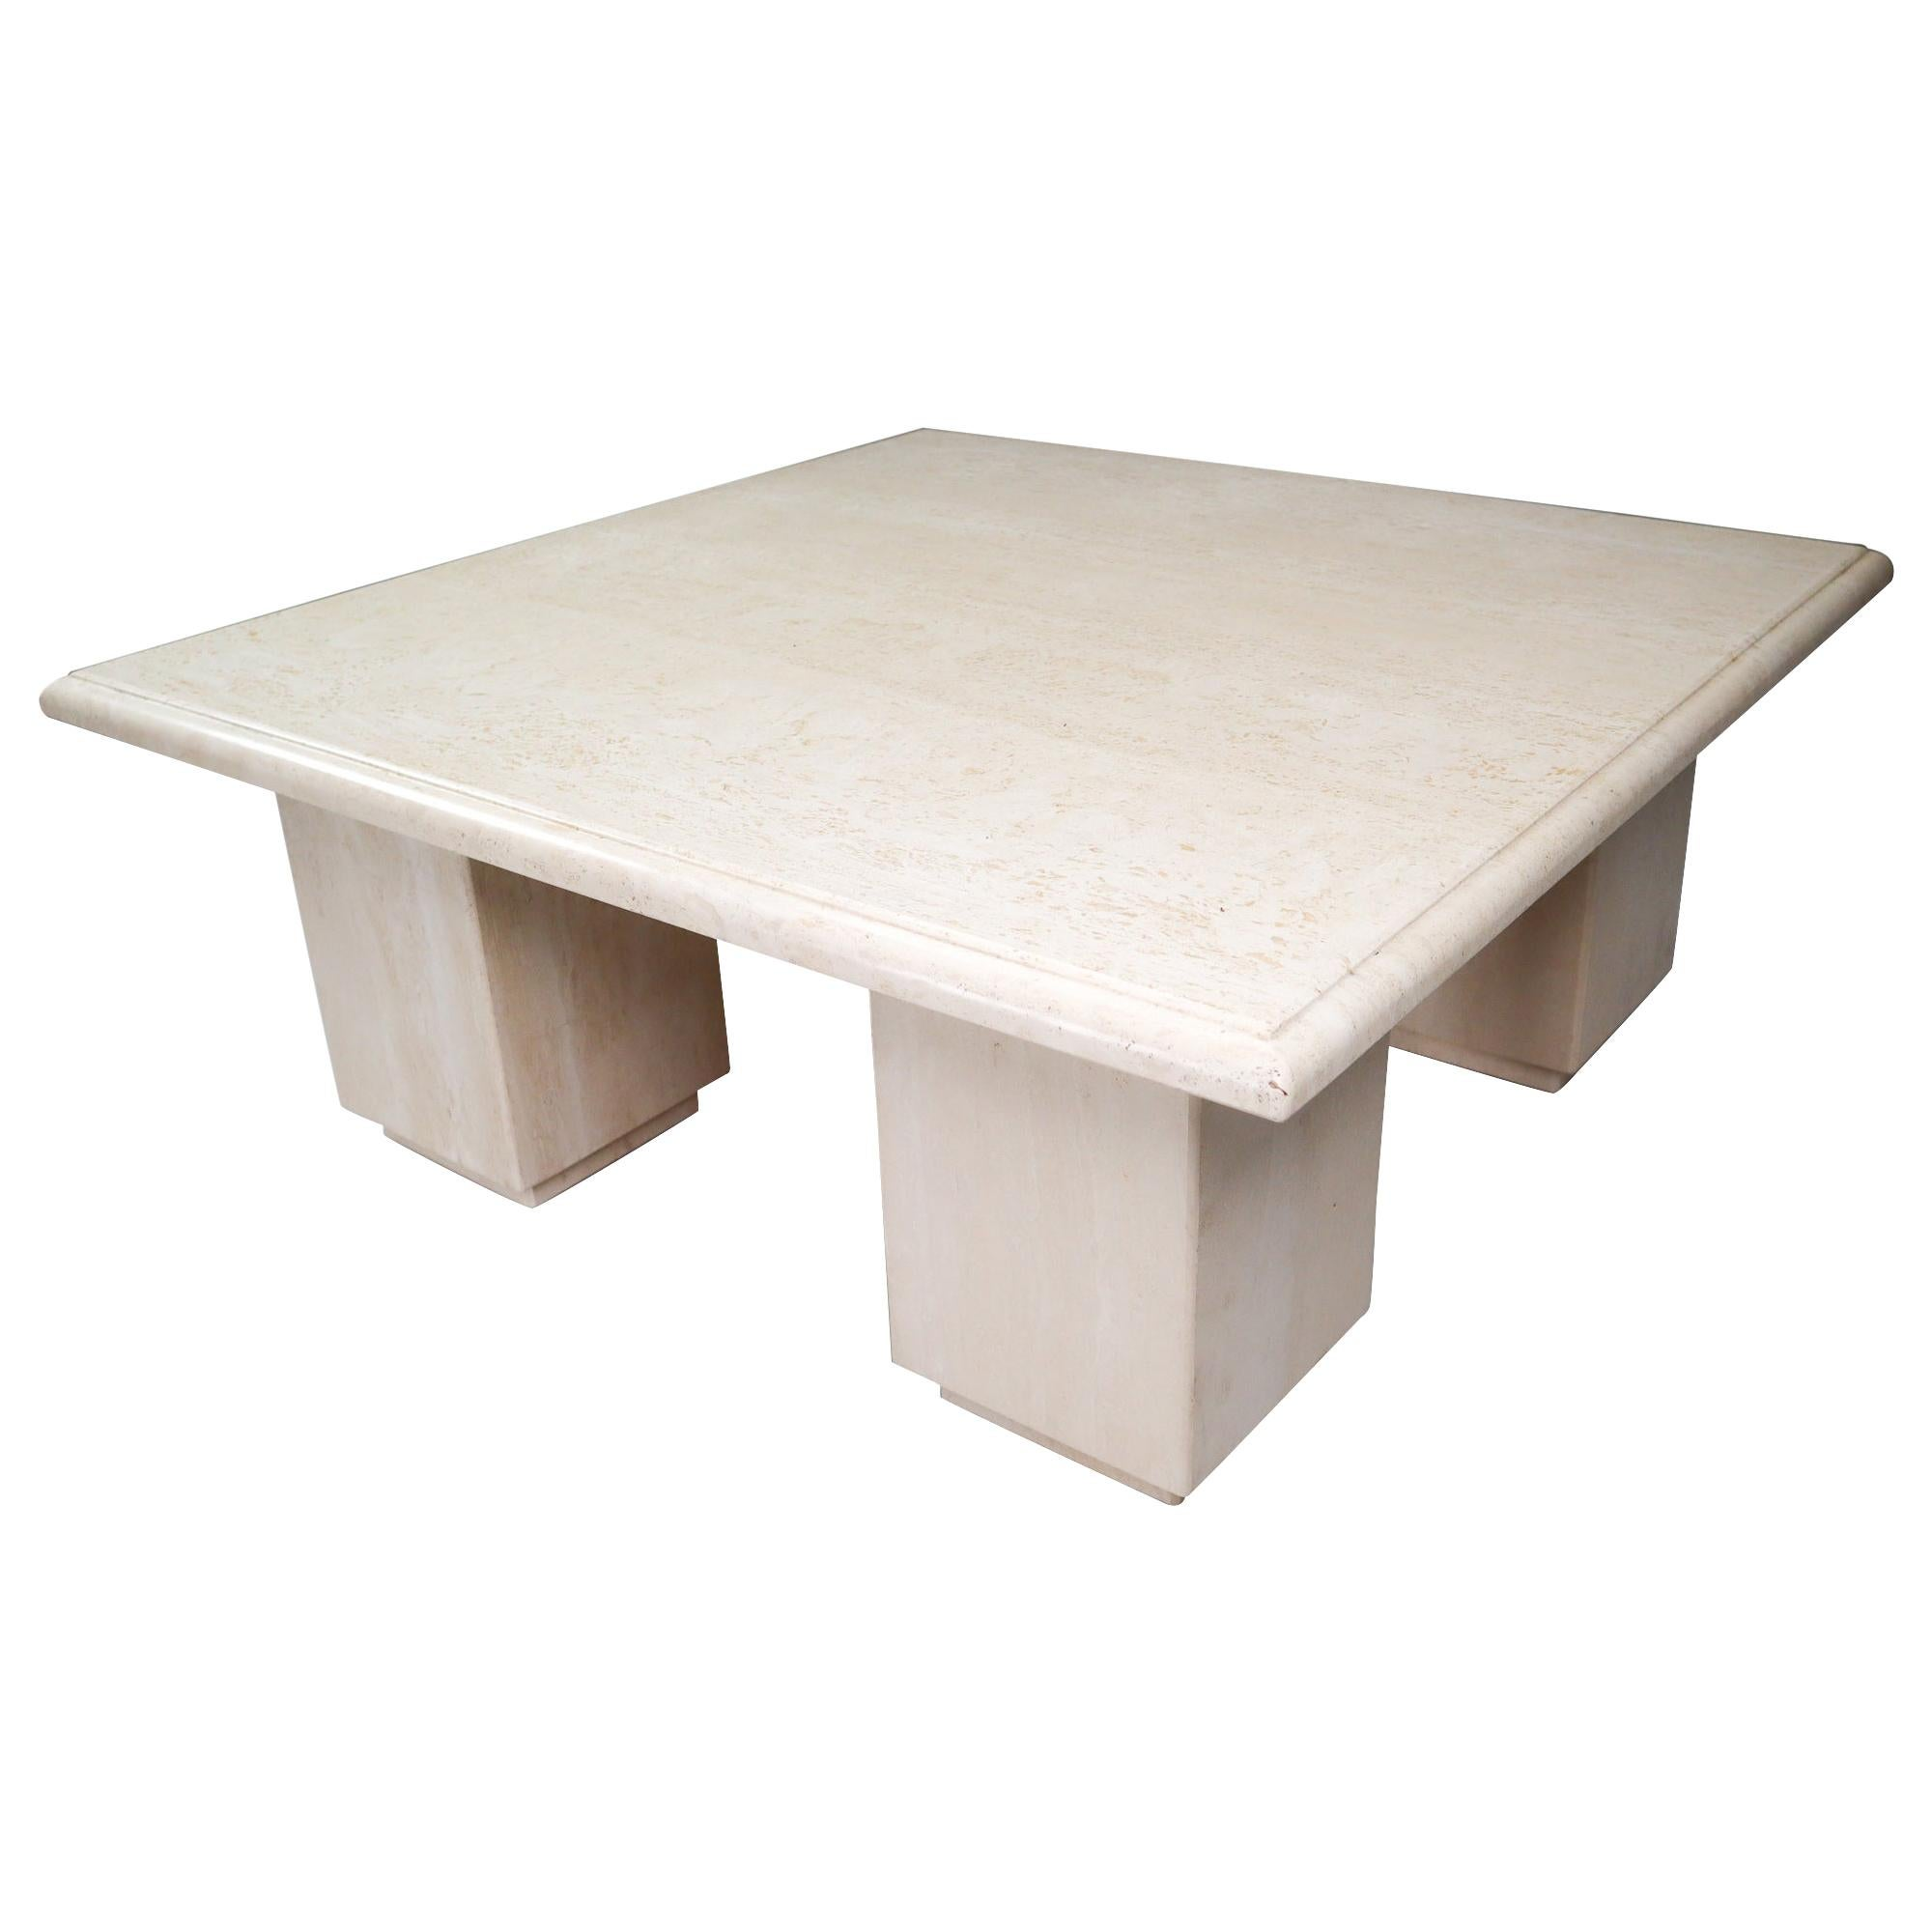 Post-Modern Square Travertine Coffee Table, Italy, 1970s